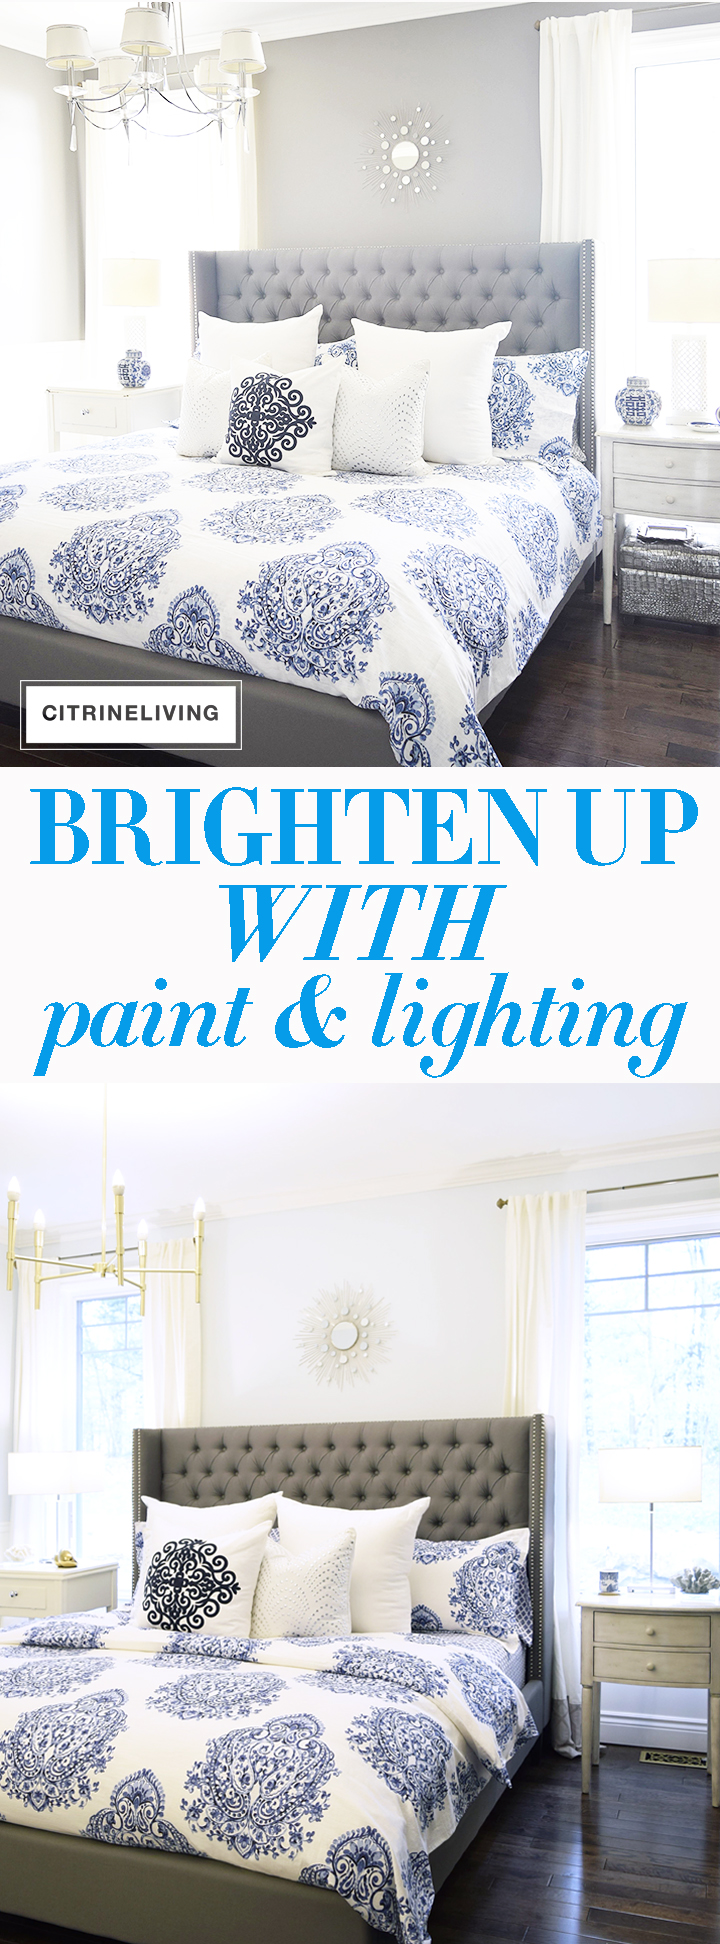 Brighten Up Your Space With Simple Fixes Like Paint And Lighting!